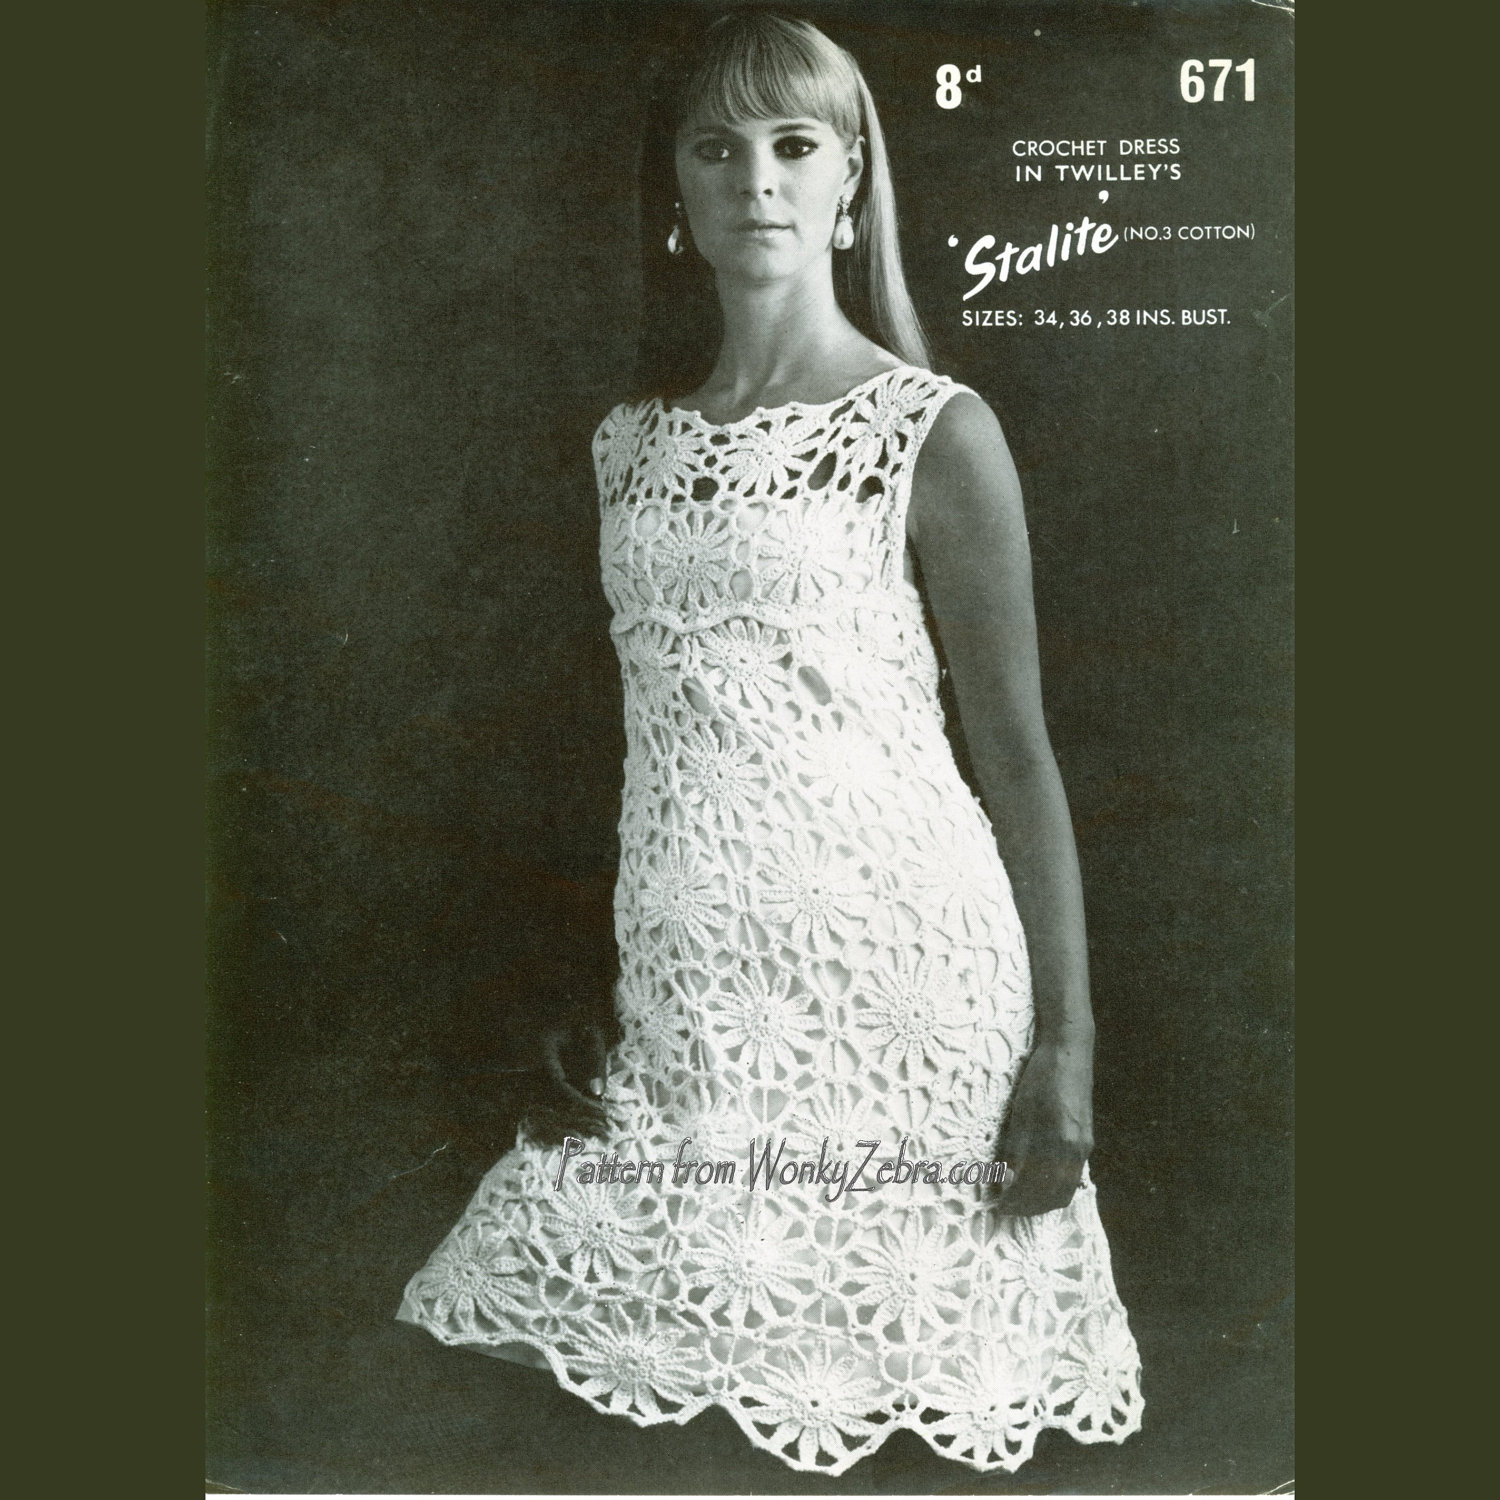 Vintage lace crochet dress